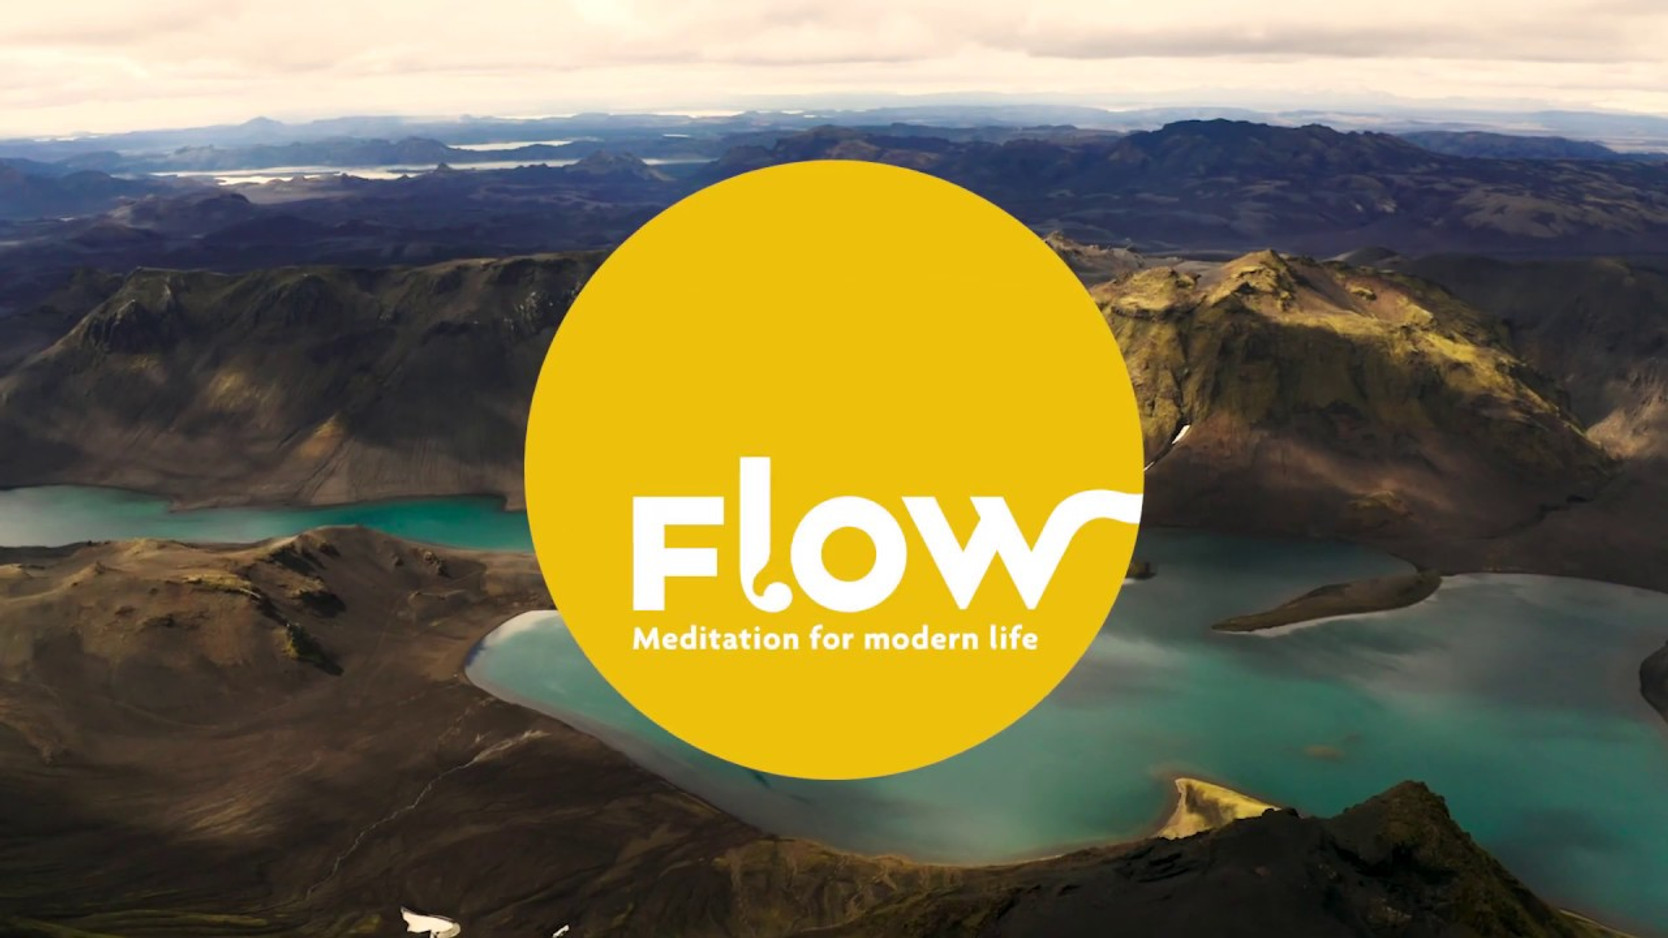 What is Flow? | Flow - Meditation for modern life